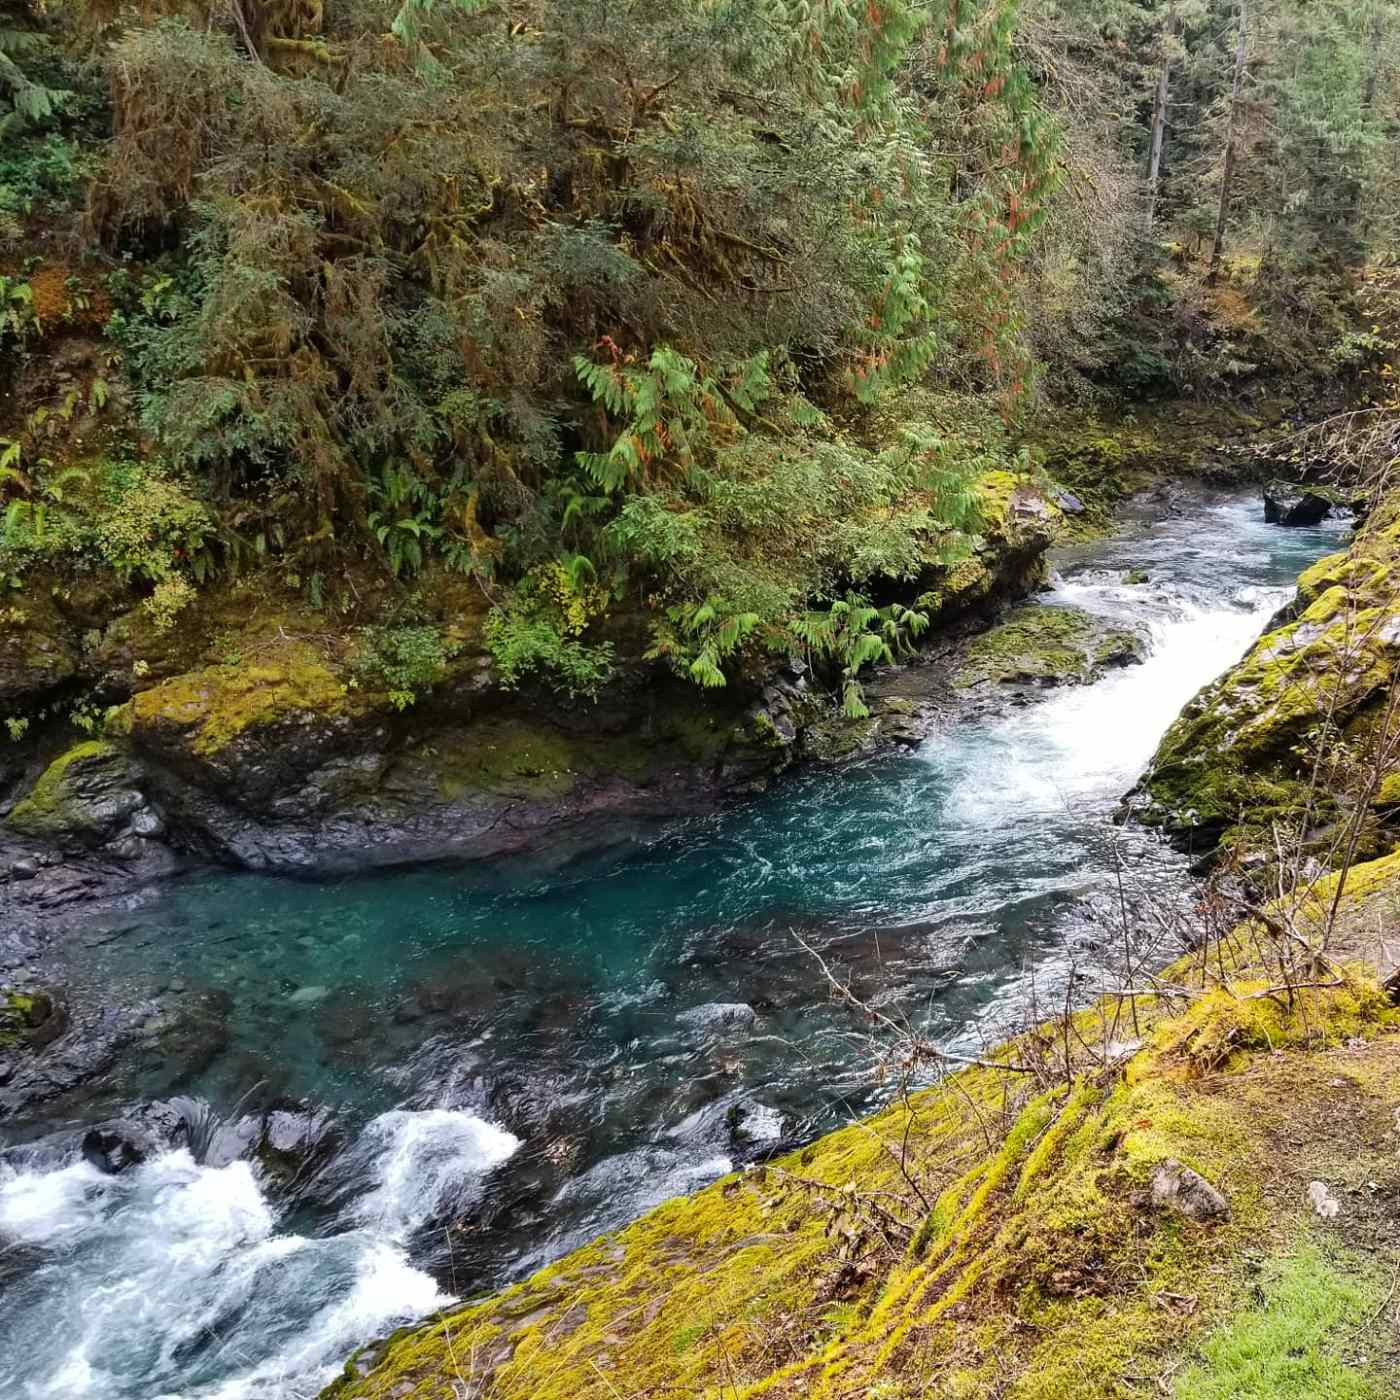 Duckabush River flowing through a rocky passage. Clear blue water with white rapids.